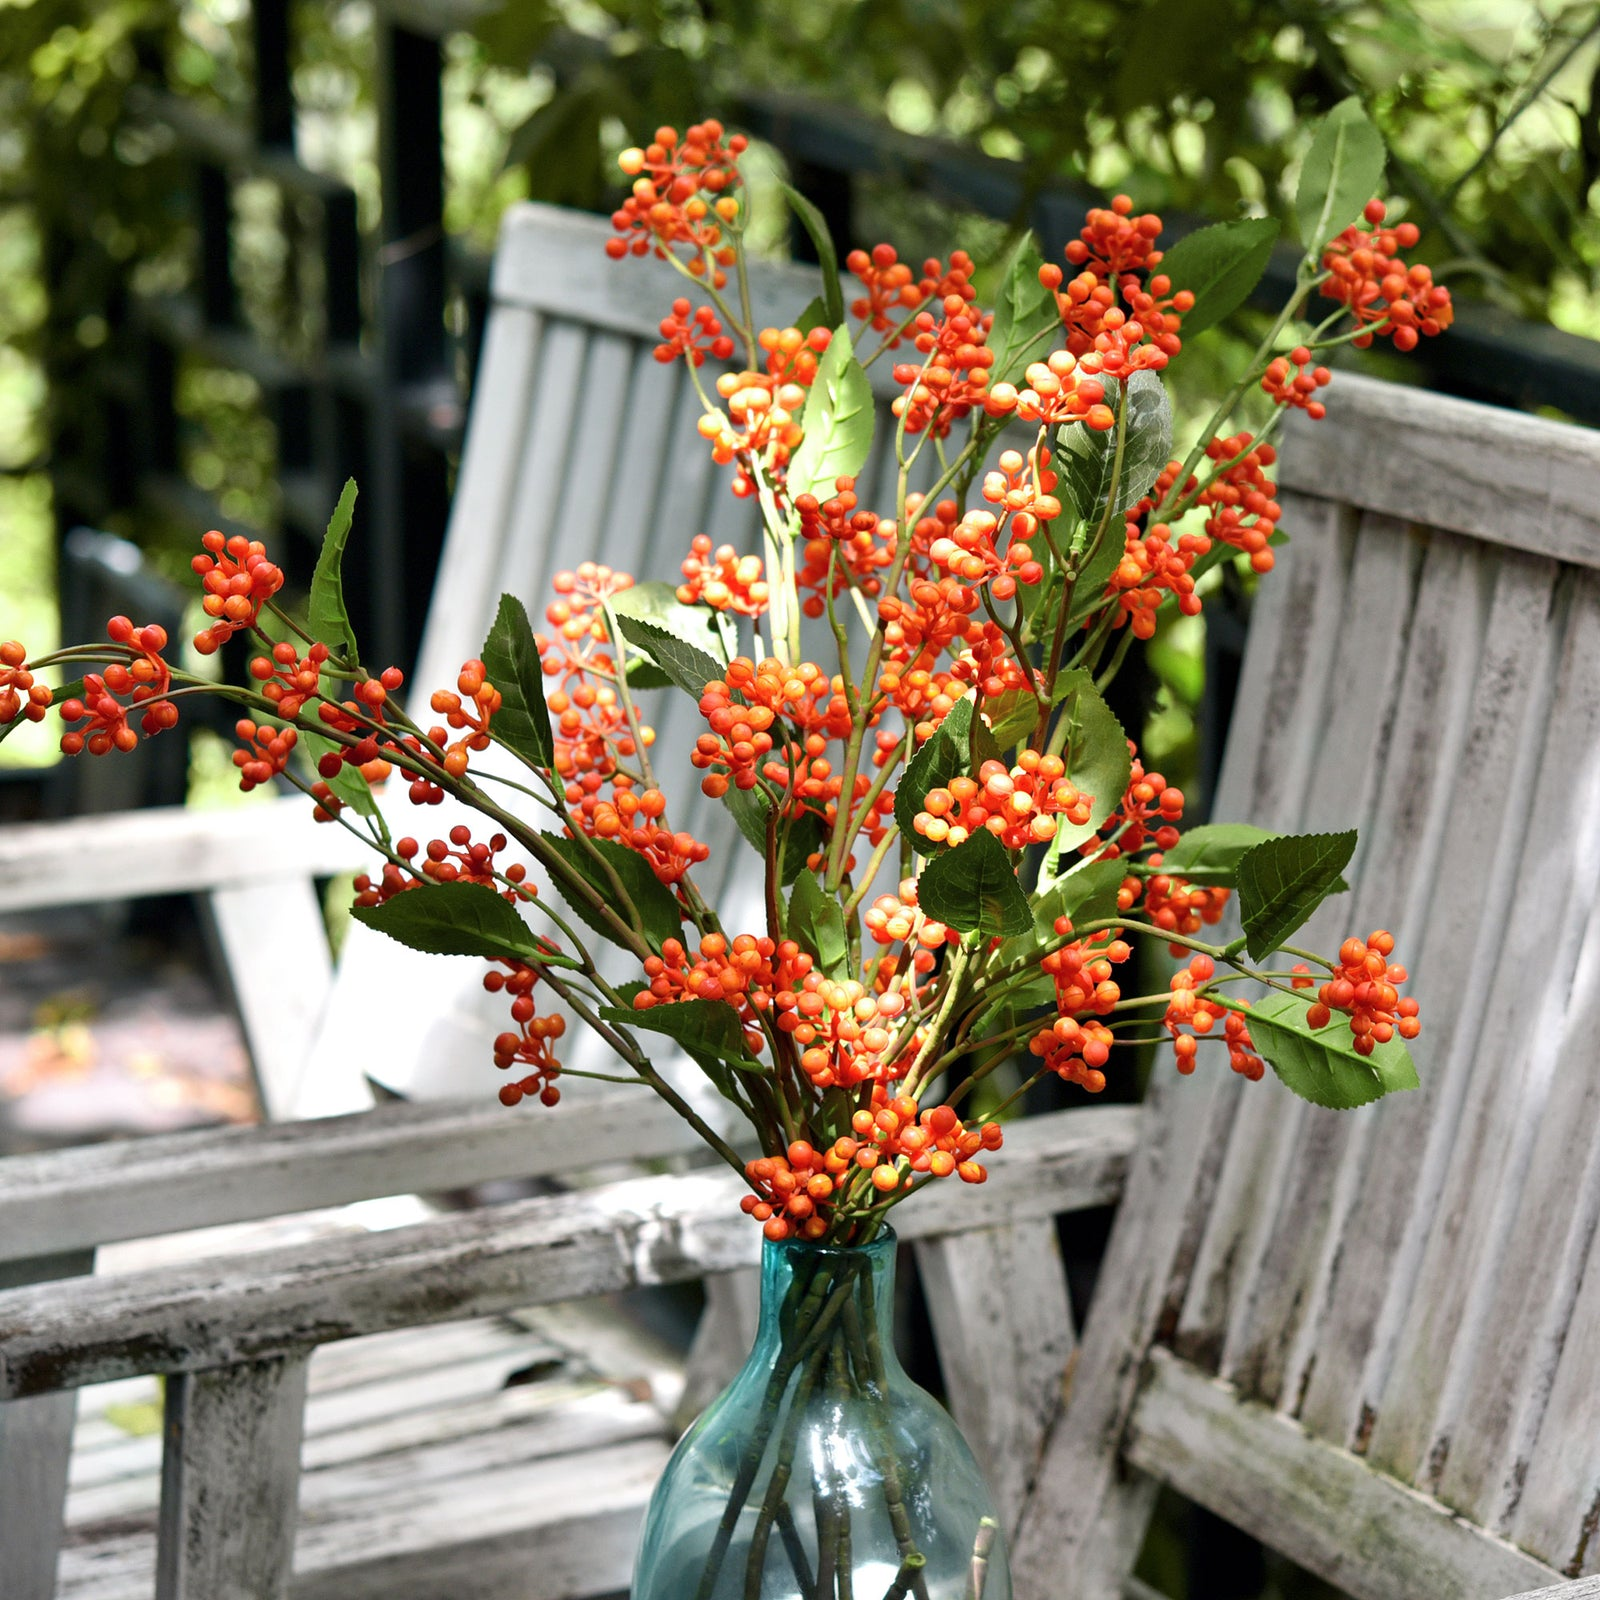 FiveSeasonStuff Artificial Fruit Orange Holly Berries Decoration for Vases, Bouquets and Floral Arrangements, 6 Berry Stems